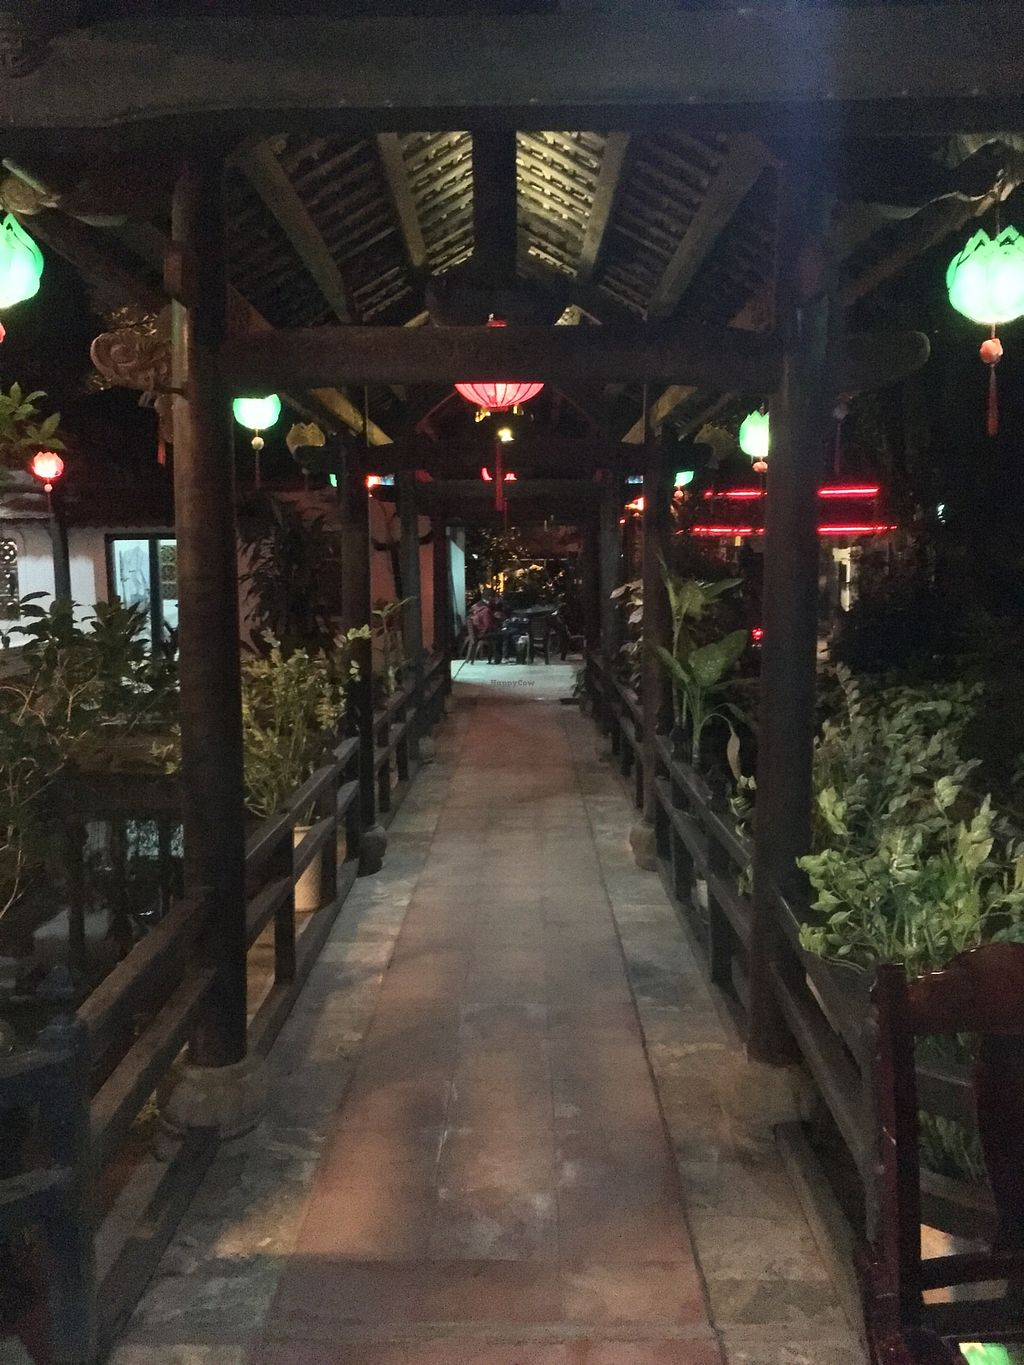 """Photo of Ngu Ha Garden Vegetarian Restaurant  by <a href=""""/members/profile/MollyKennedy"""">MollyKennedy</a> <br/>Garden <br/> January 28, 2018  - <a href='/contact/abuse/image/82947/351773'>Report</a>"""